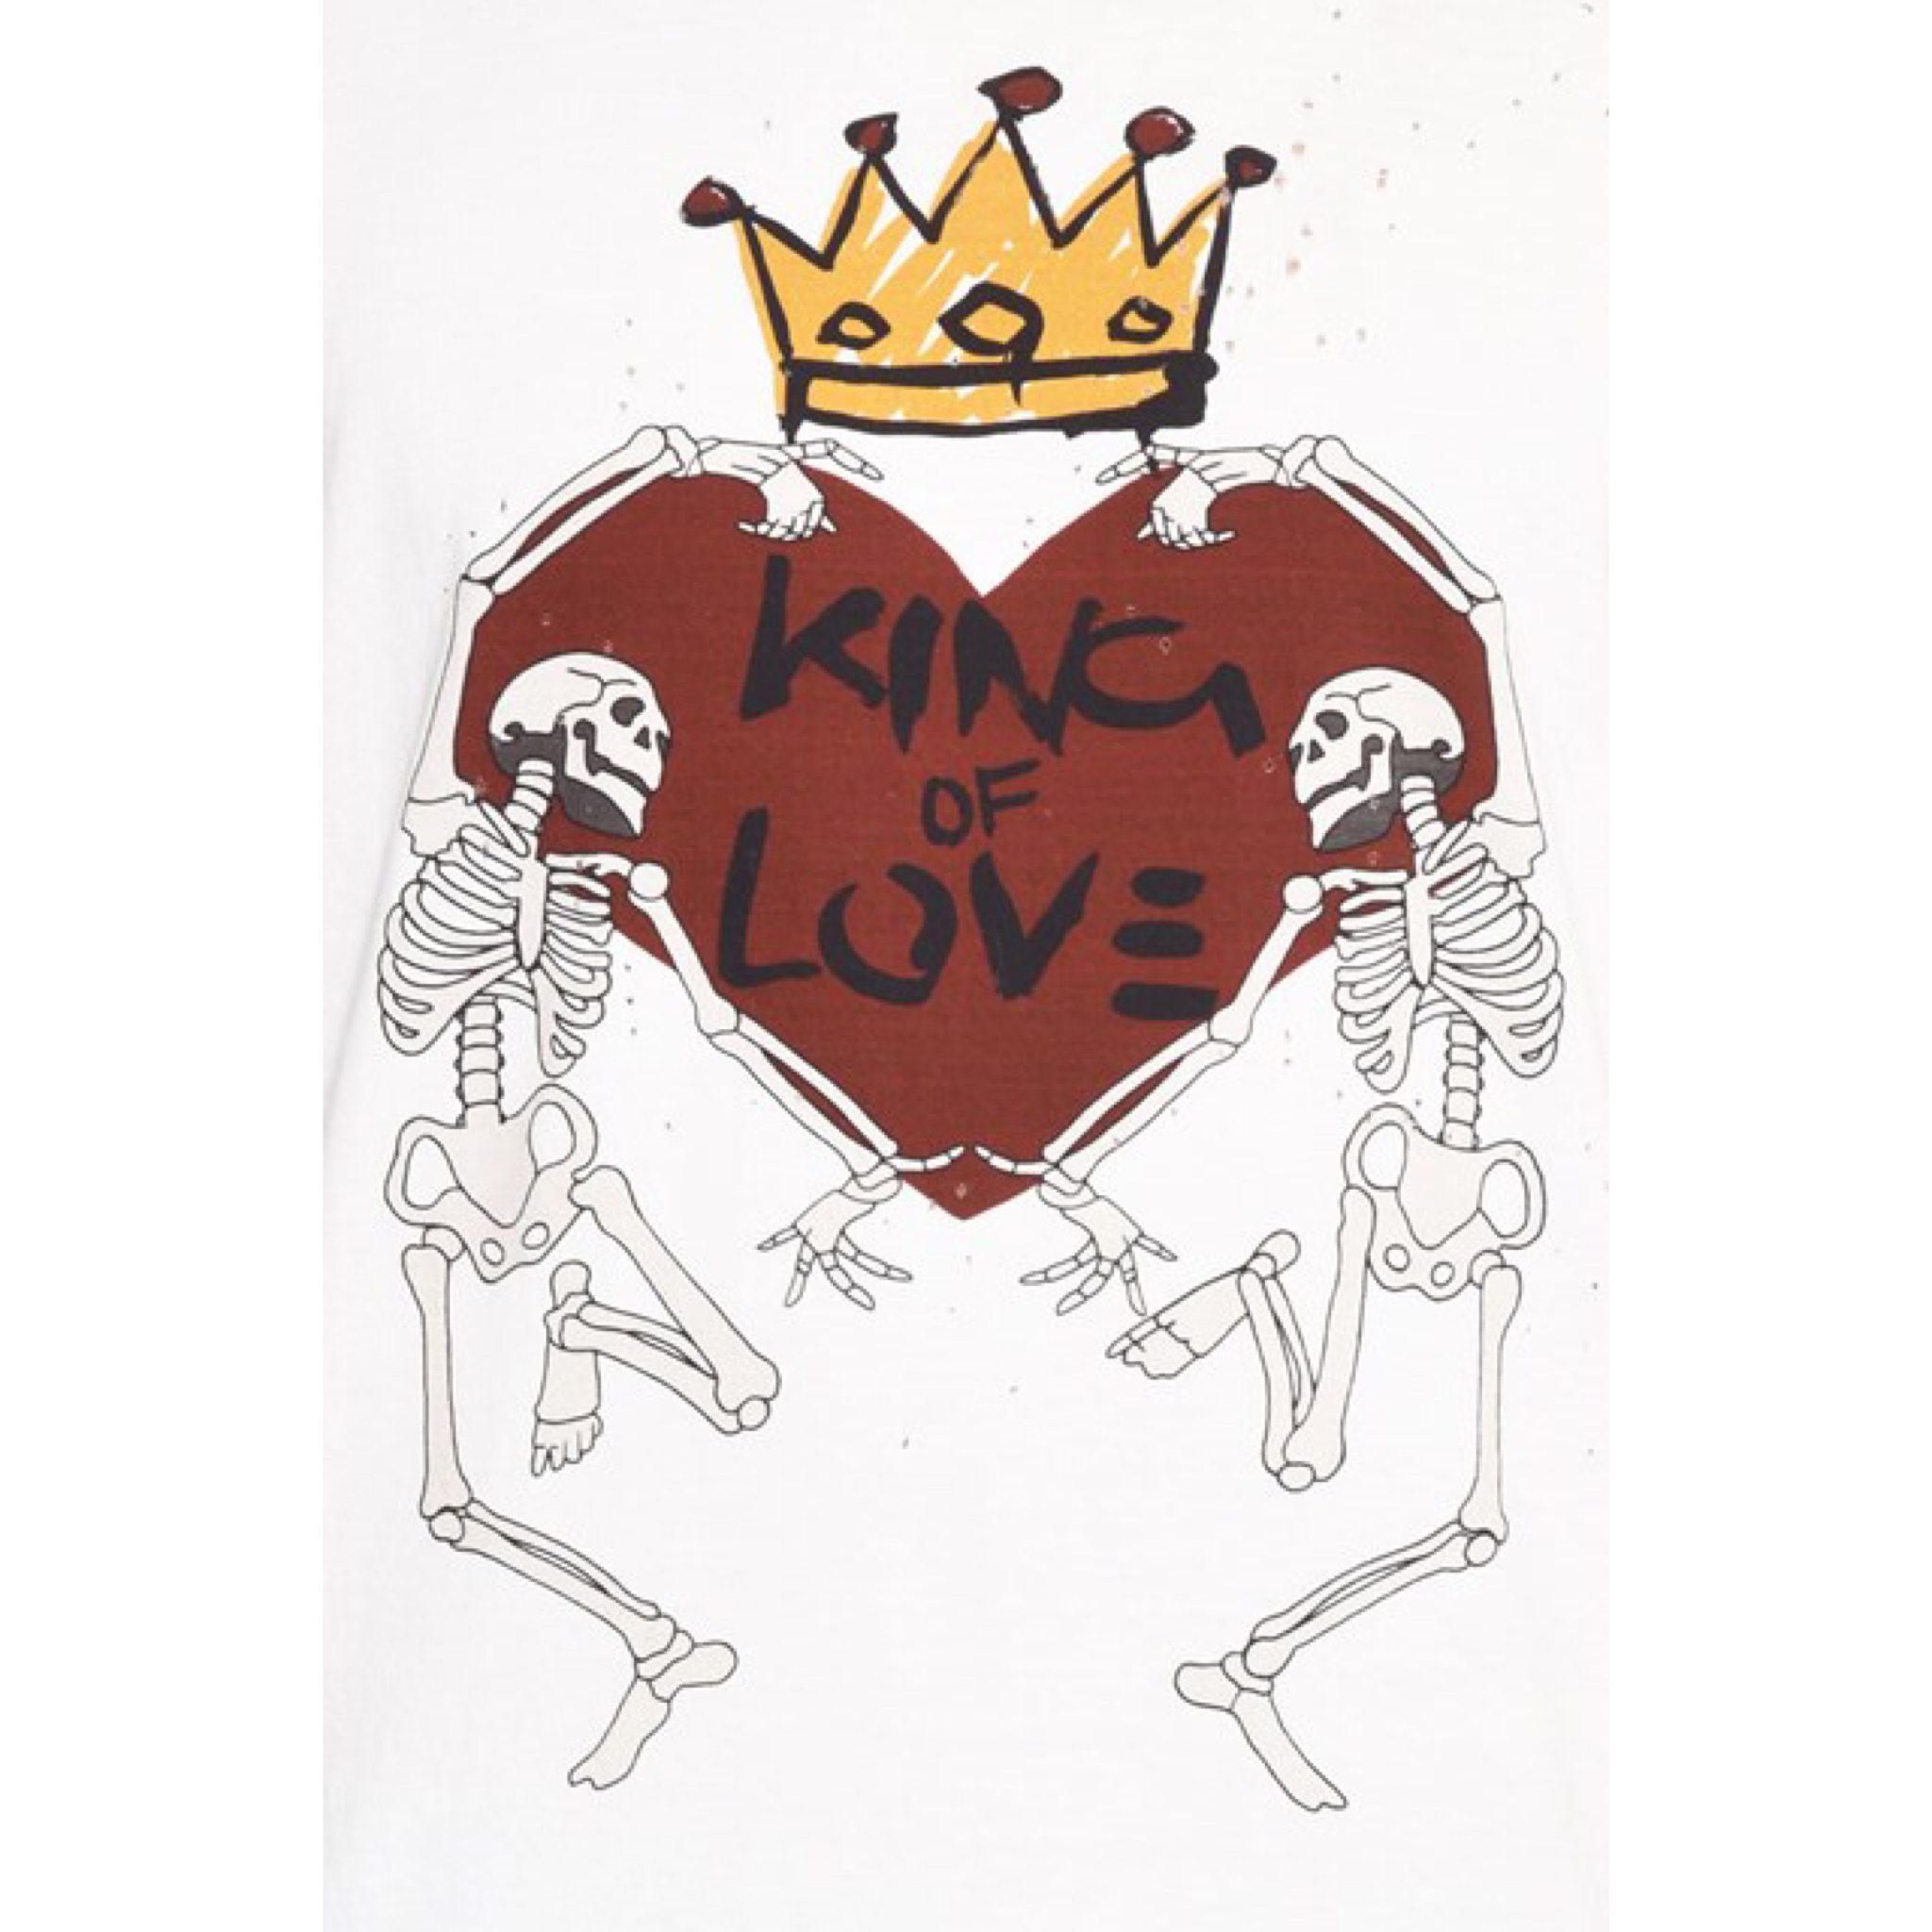 新作【Dolce & Gabbana】King of Love 七分袖 Tシャツ